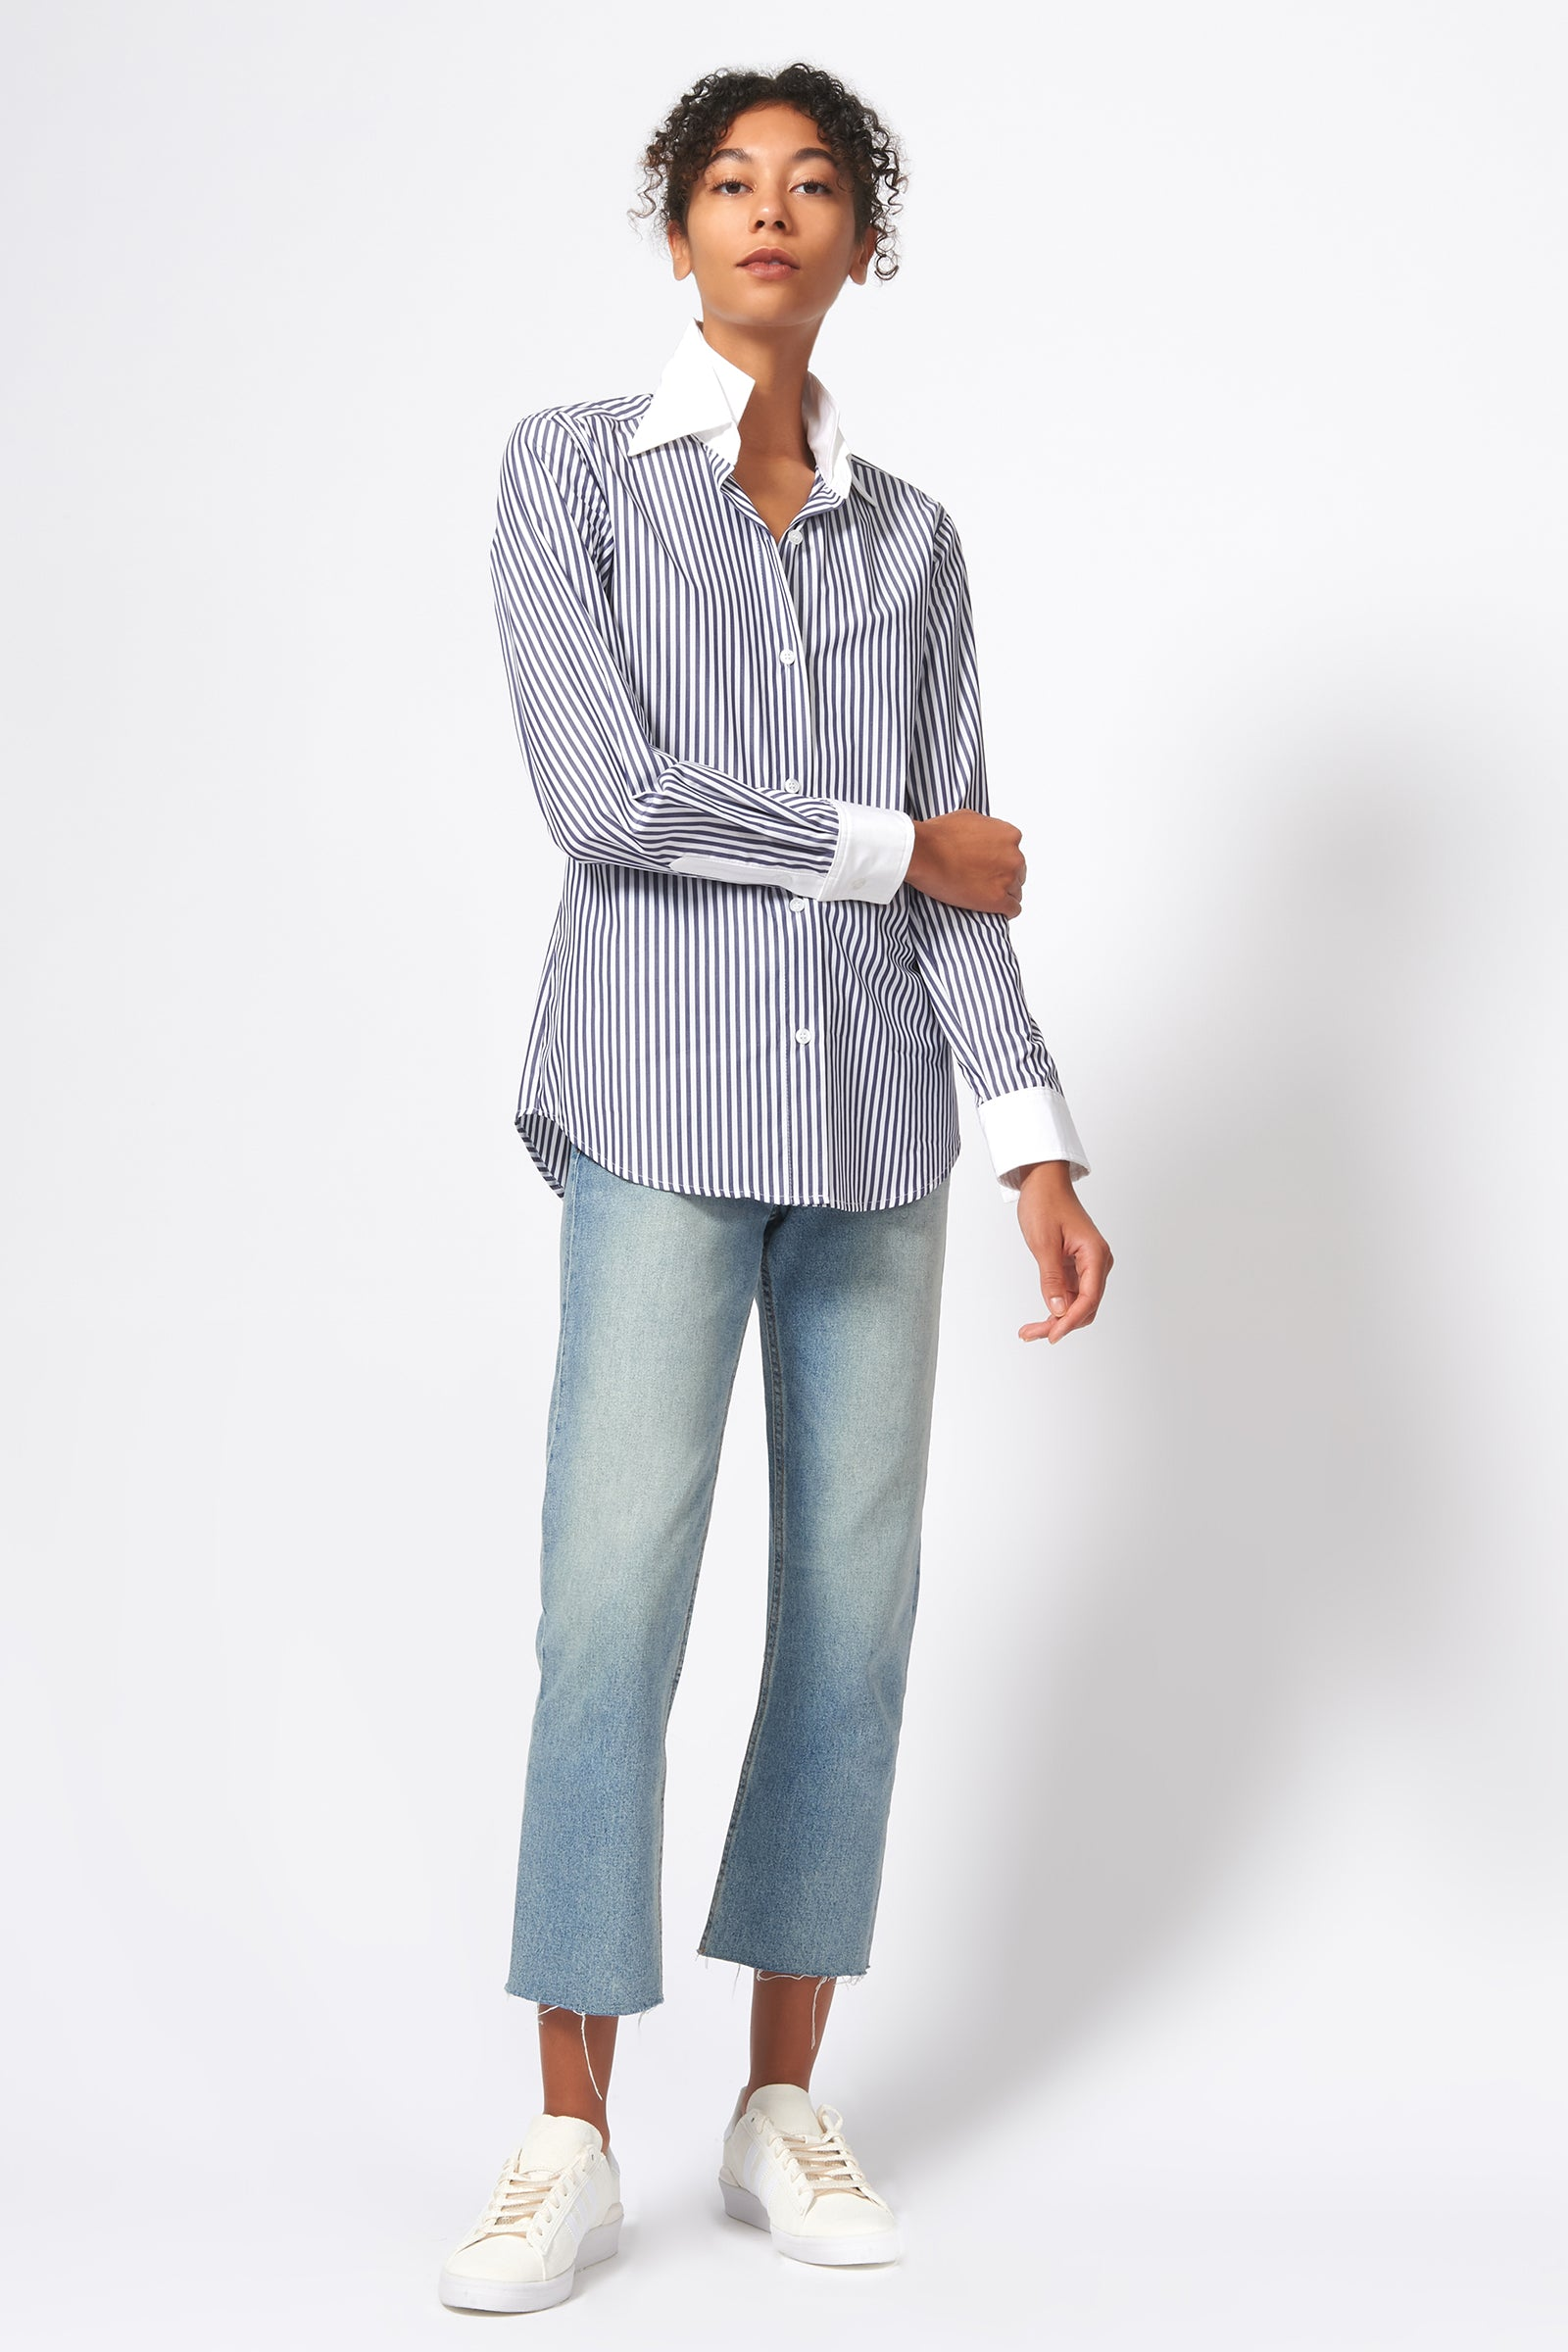 Kal Rieman Double Collar Shirt in Blue and White Stripe Print on Model Full Front